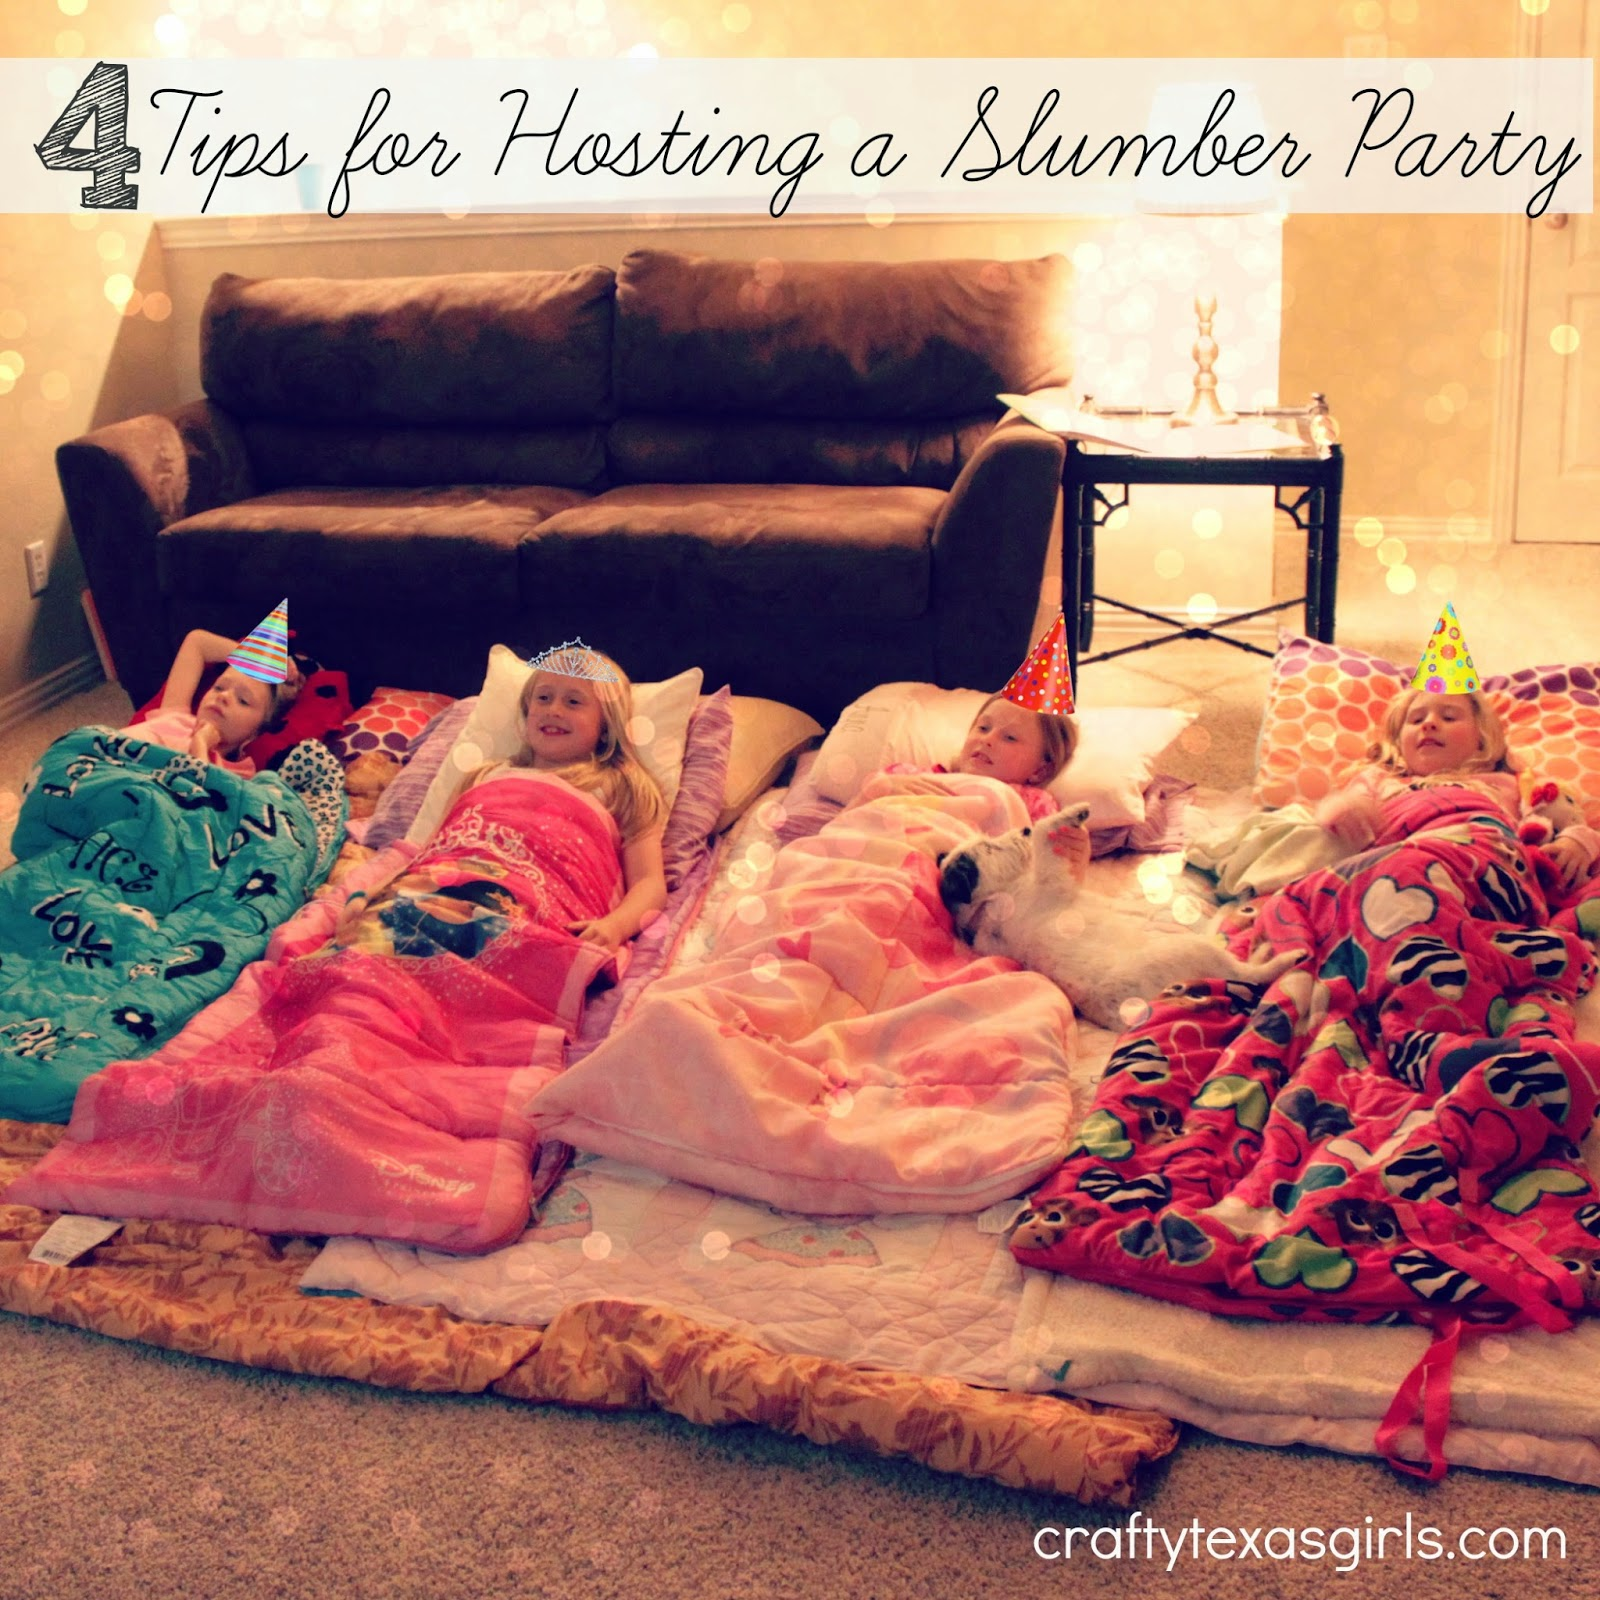 Crafty Texas Girls: 4 Tips for Hosting a Slumber Party